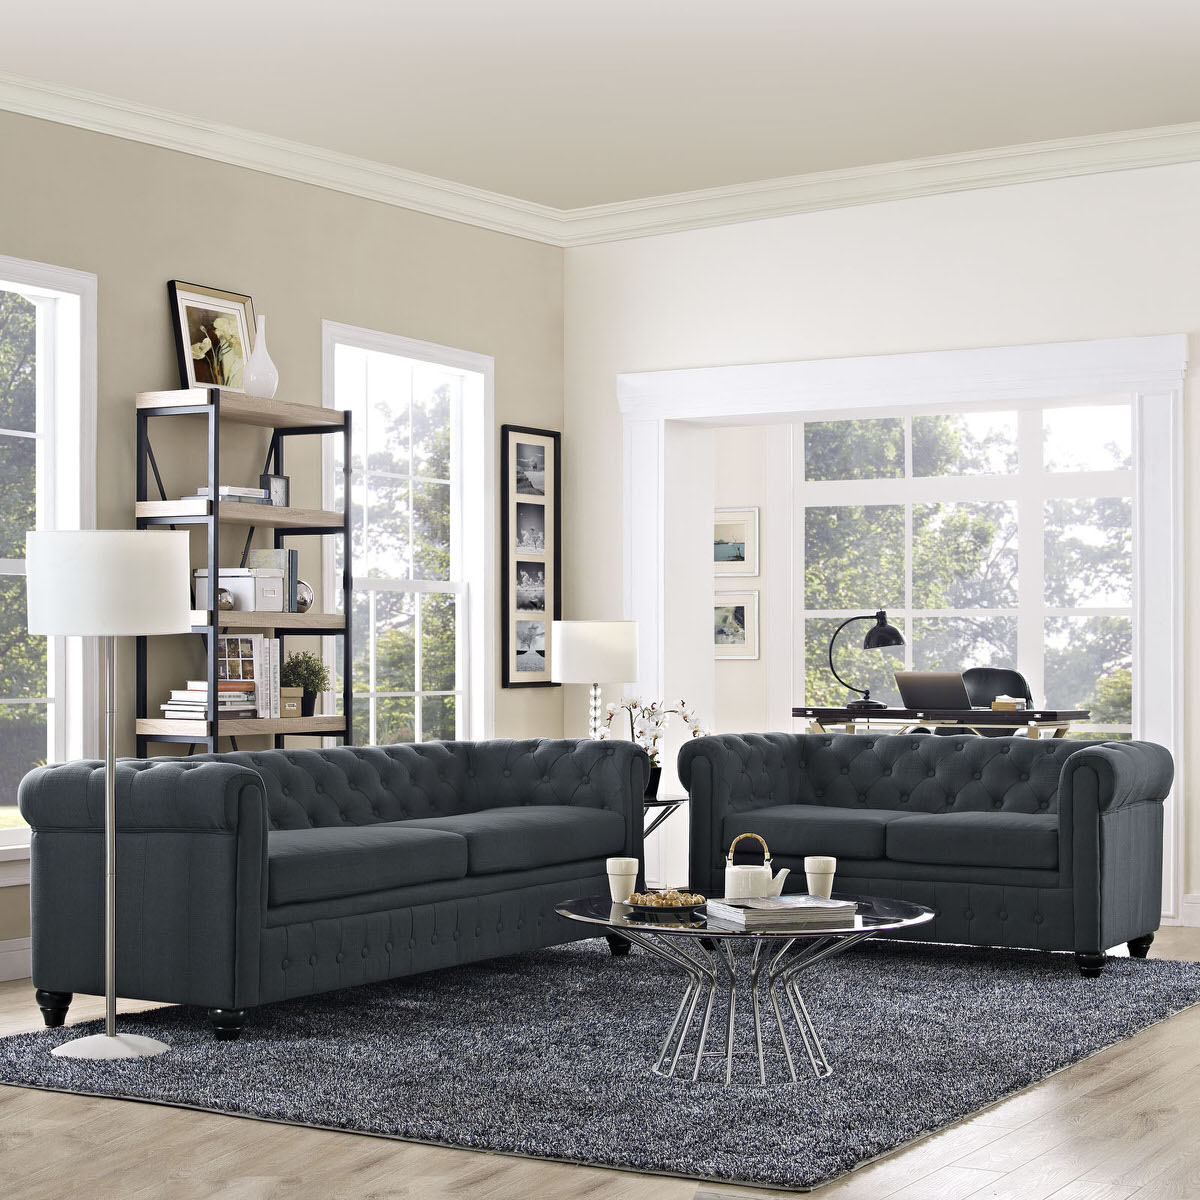 Earl 2 Piece Upholstered Fabric Living Room Set Gray by Modway